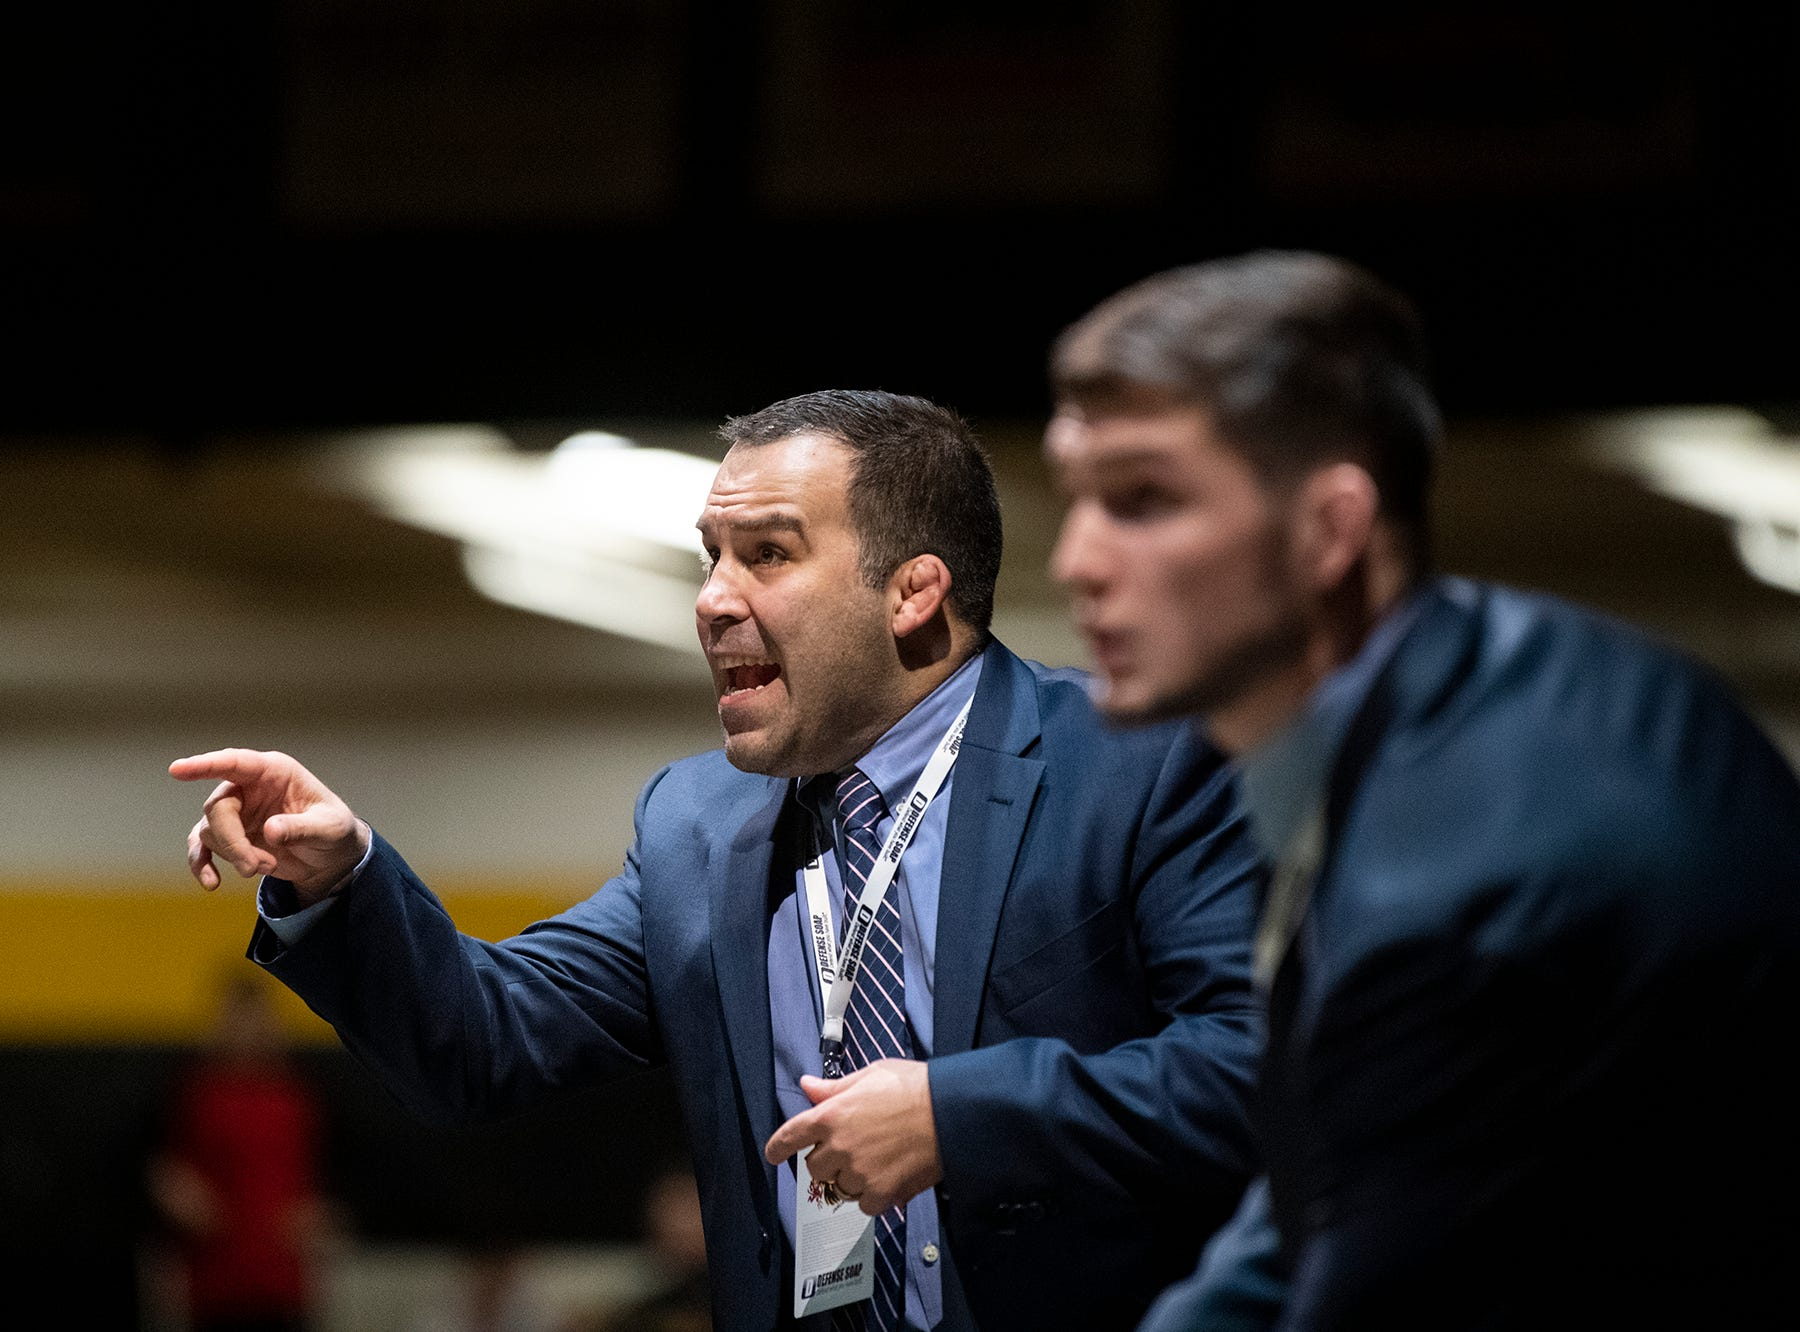 Lock Haven head coach Scott Moore yells out to a Bald Eagle wrestler at Red Lion's Fitzkee Athletic Center on Friday, Jan. 25, 2019. No. 22 Lock Haven upset No. 12 Arizona State, 23-14, in the first ever 'Rumble in the Jungle.'